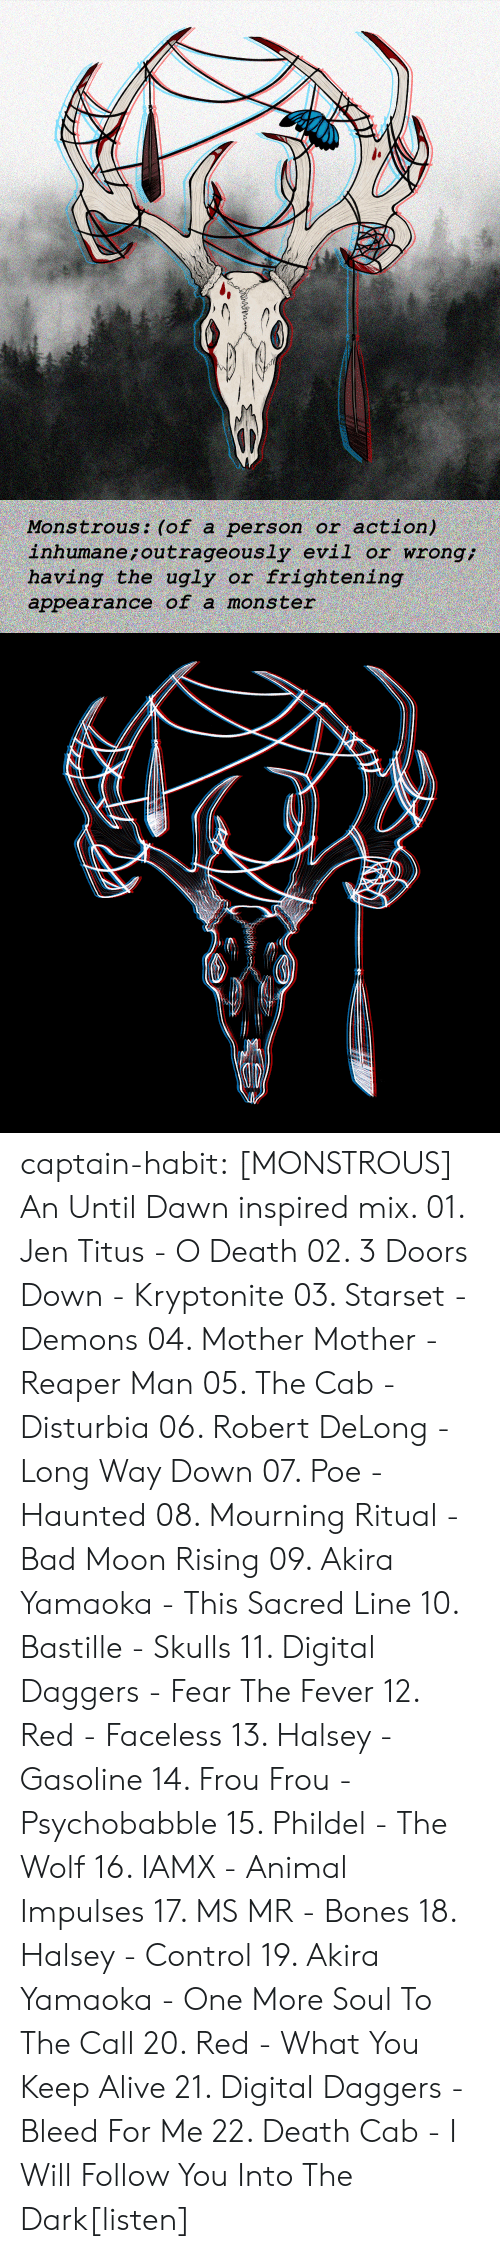 jen: action)  inhumane ; outrageously evil or wrong  having the ugly or frightening  Monstrous: (of a person or  appearance of a mons ter captain-habit:  [MONSTROUS] An Until Dawn inspired mix. 01. Jen Titus - O Death 02. 3 Doors Down - Kryptonite 03. Starset - Demons 04. Mother Mother - Reaper Man 05. The Cab - Disturbia 06. Robert DeLong - Long Way Down 07. Poe - Haunted  08. Mourning Ritual - Bad Moon Rising 09. Akira Yamaoka - This Sacred Line 10. Bastille - Skulls 11. Digital Daggers - Fear The Fever 12. Red - Faceless 13. Halsey - Gasoline  14. Frou Frou - Psychobabble  15. Phildel - The Wolf 16. IAMX - Animal Impulses 17. MS MR - Bones 18. Halsey - Control 19. Akira Yamaoka - One More Soul To The Call 20. Red - What You Keep Alive 21. Digital Daggers - Bleed For Me 22. Death Cab - I Will Follow You Into The Dark[listen]